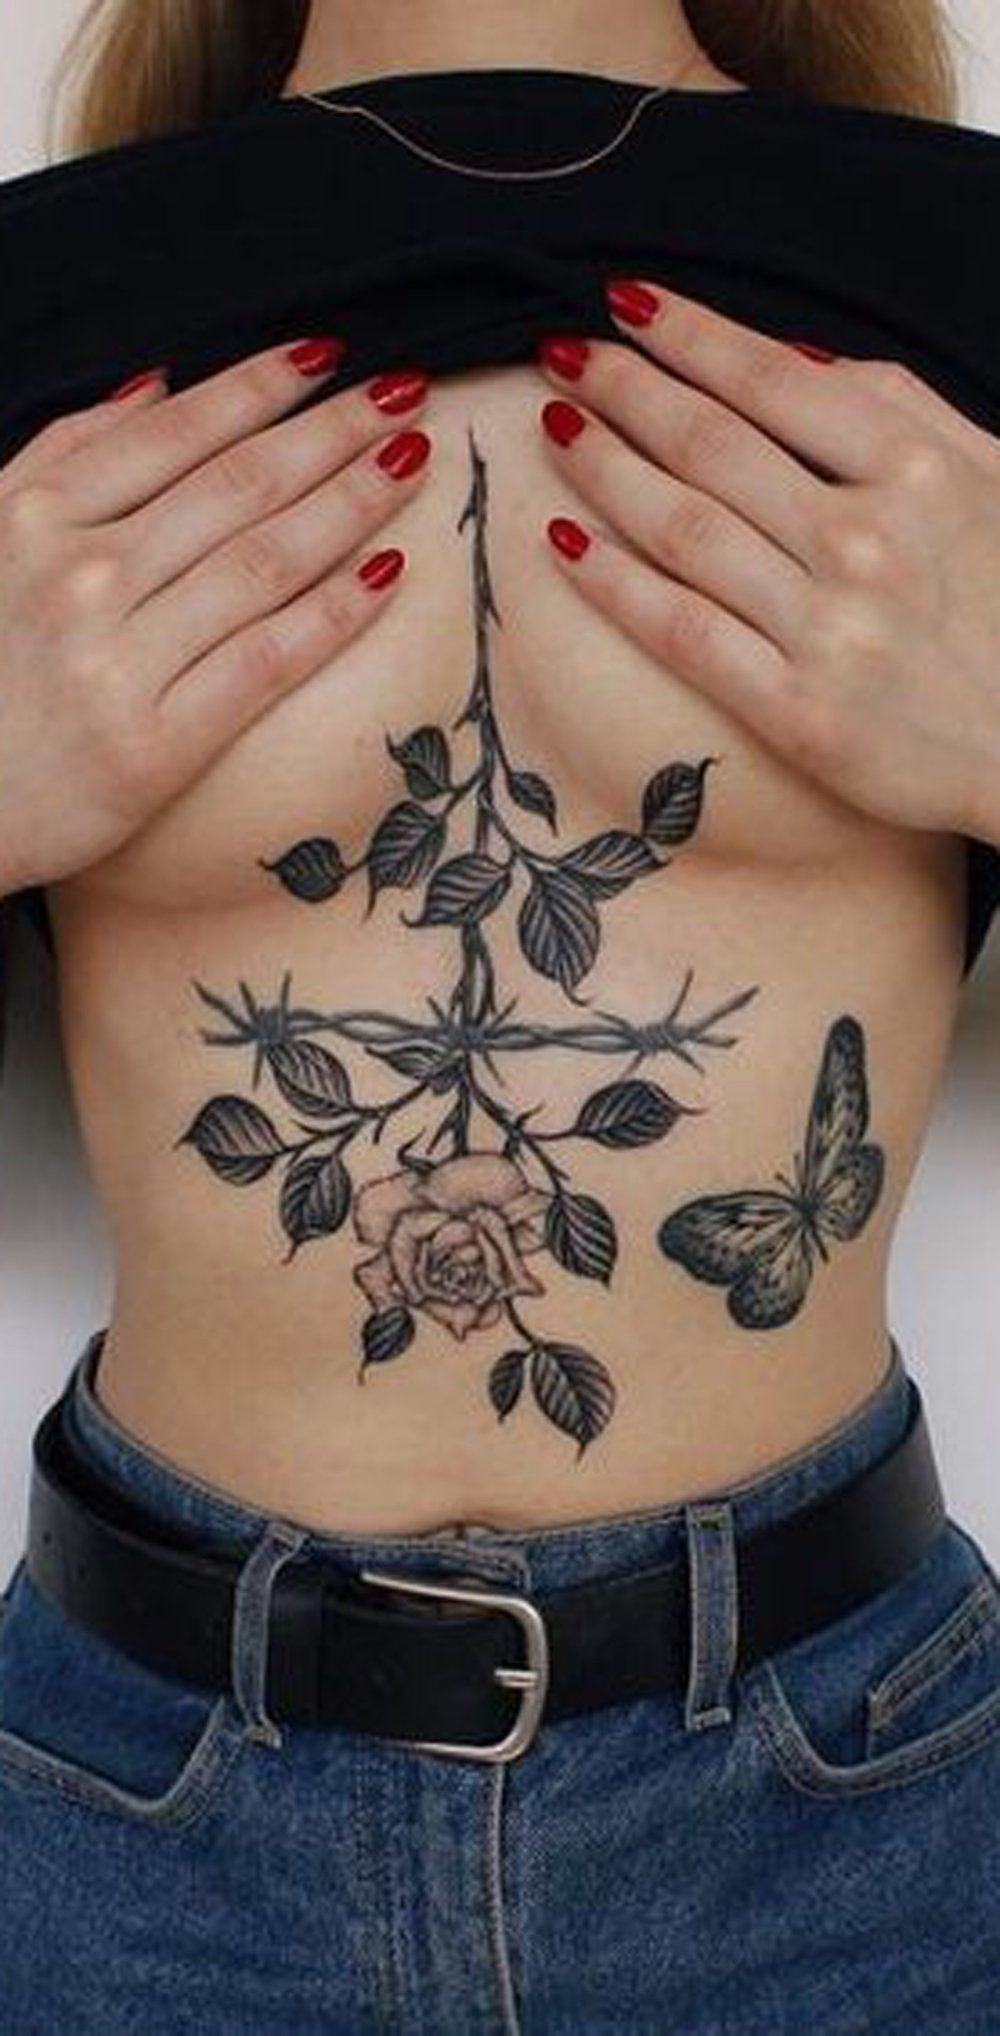 Realistic large rose sternum tattoo ideas for women nature leaf